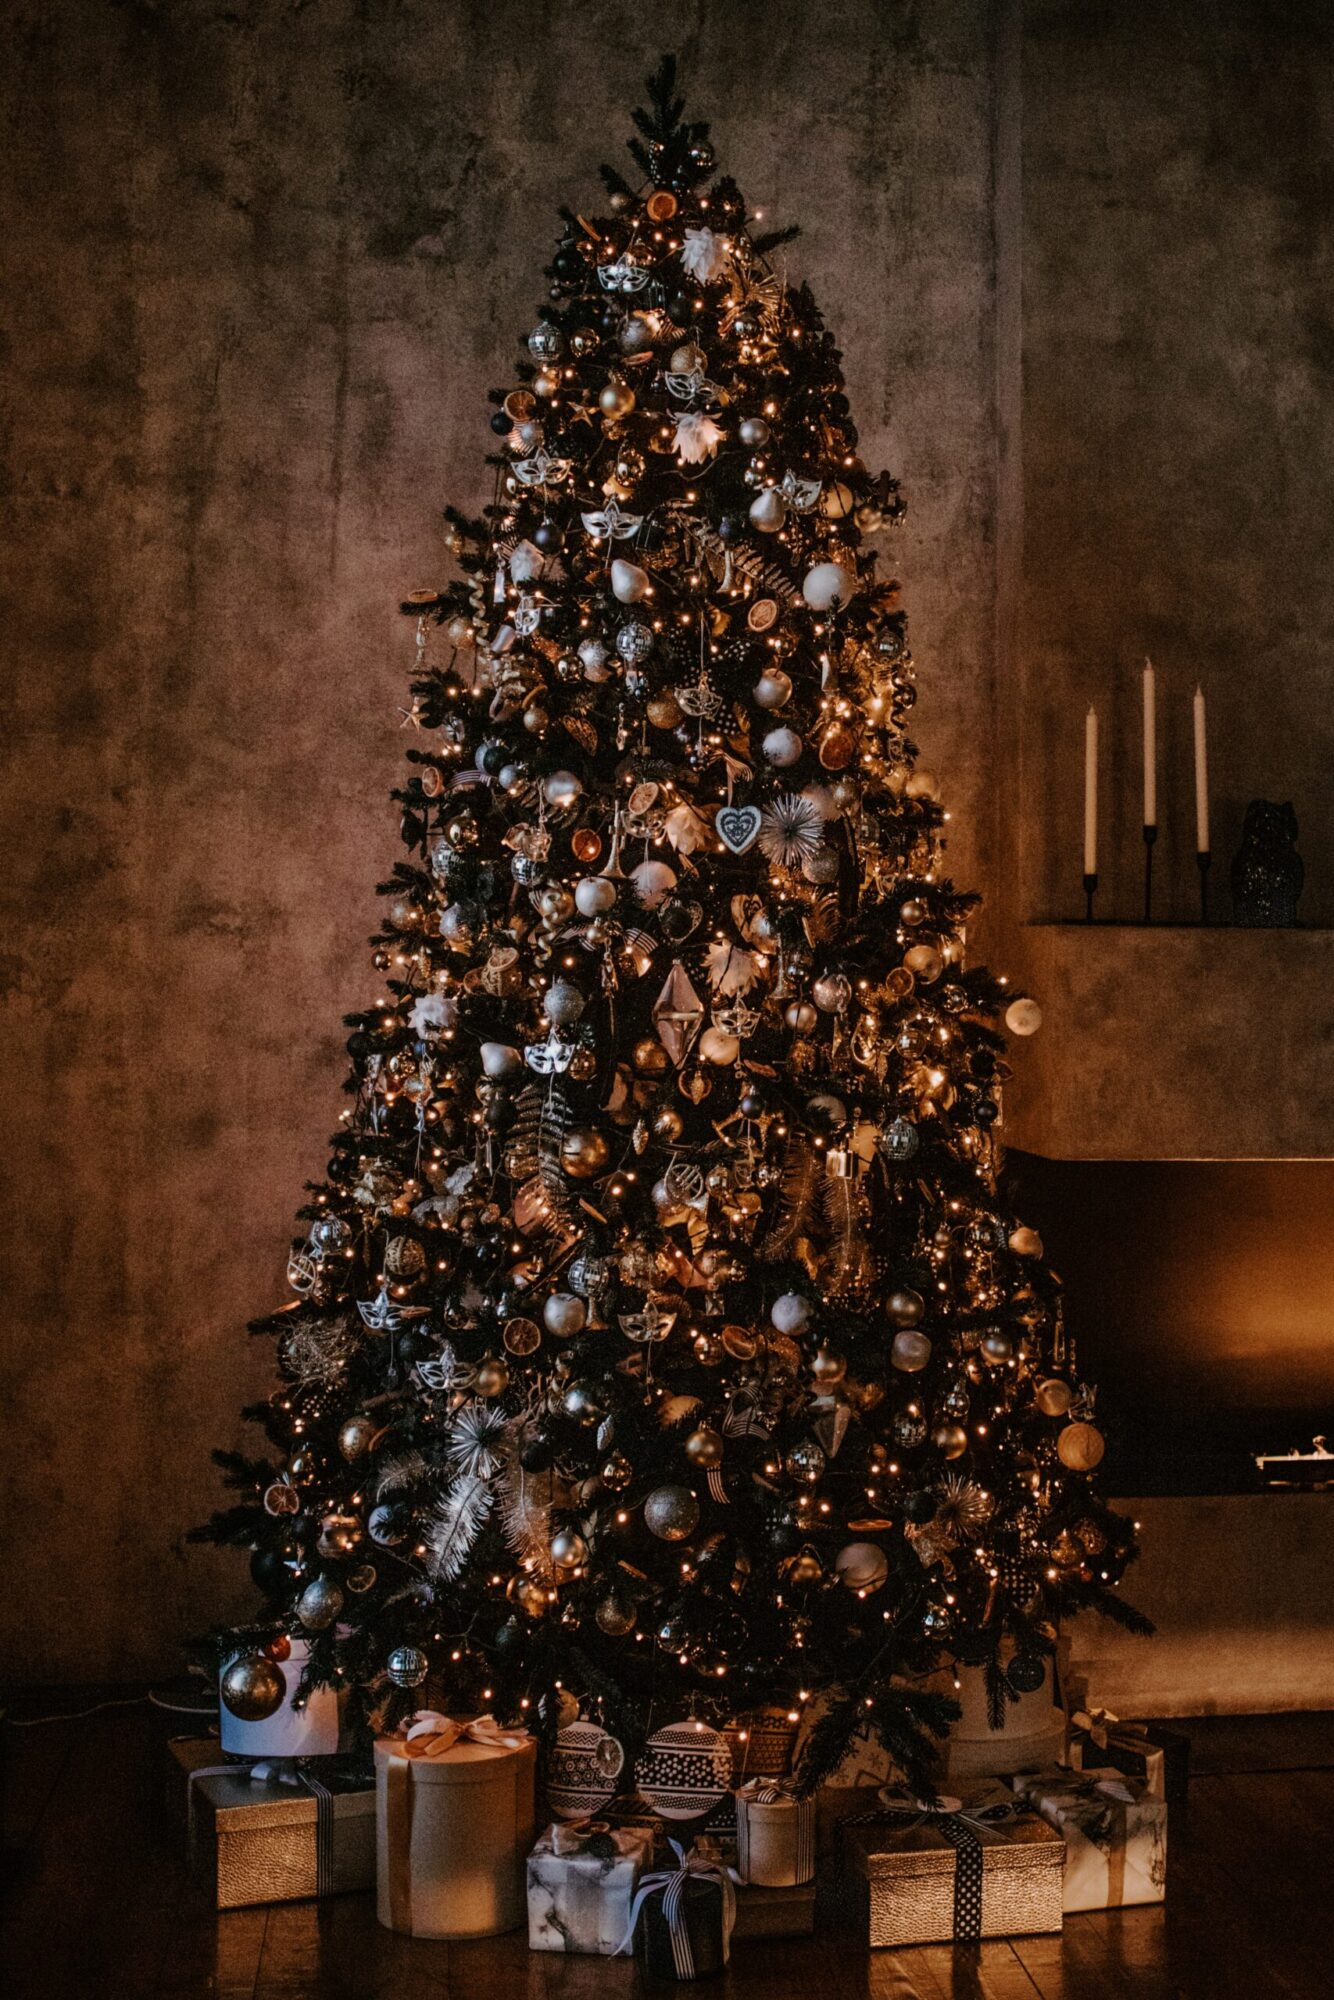 Fully decorated Christmas tree on a dark background